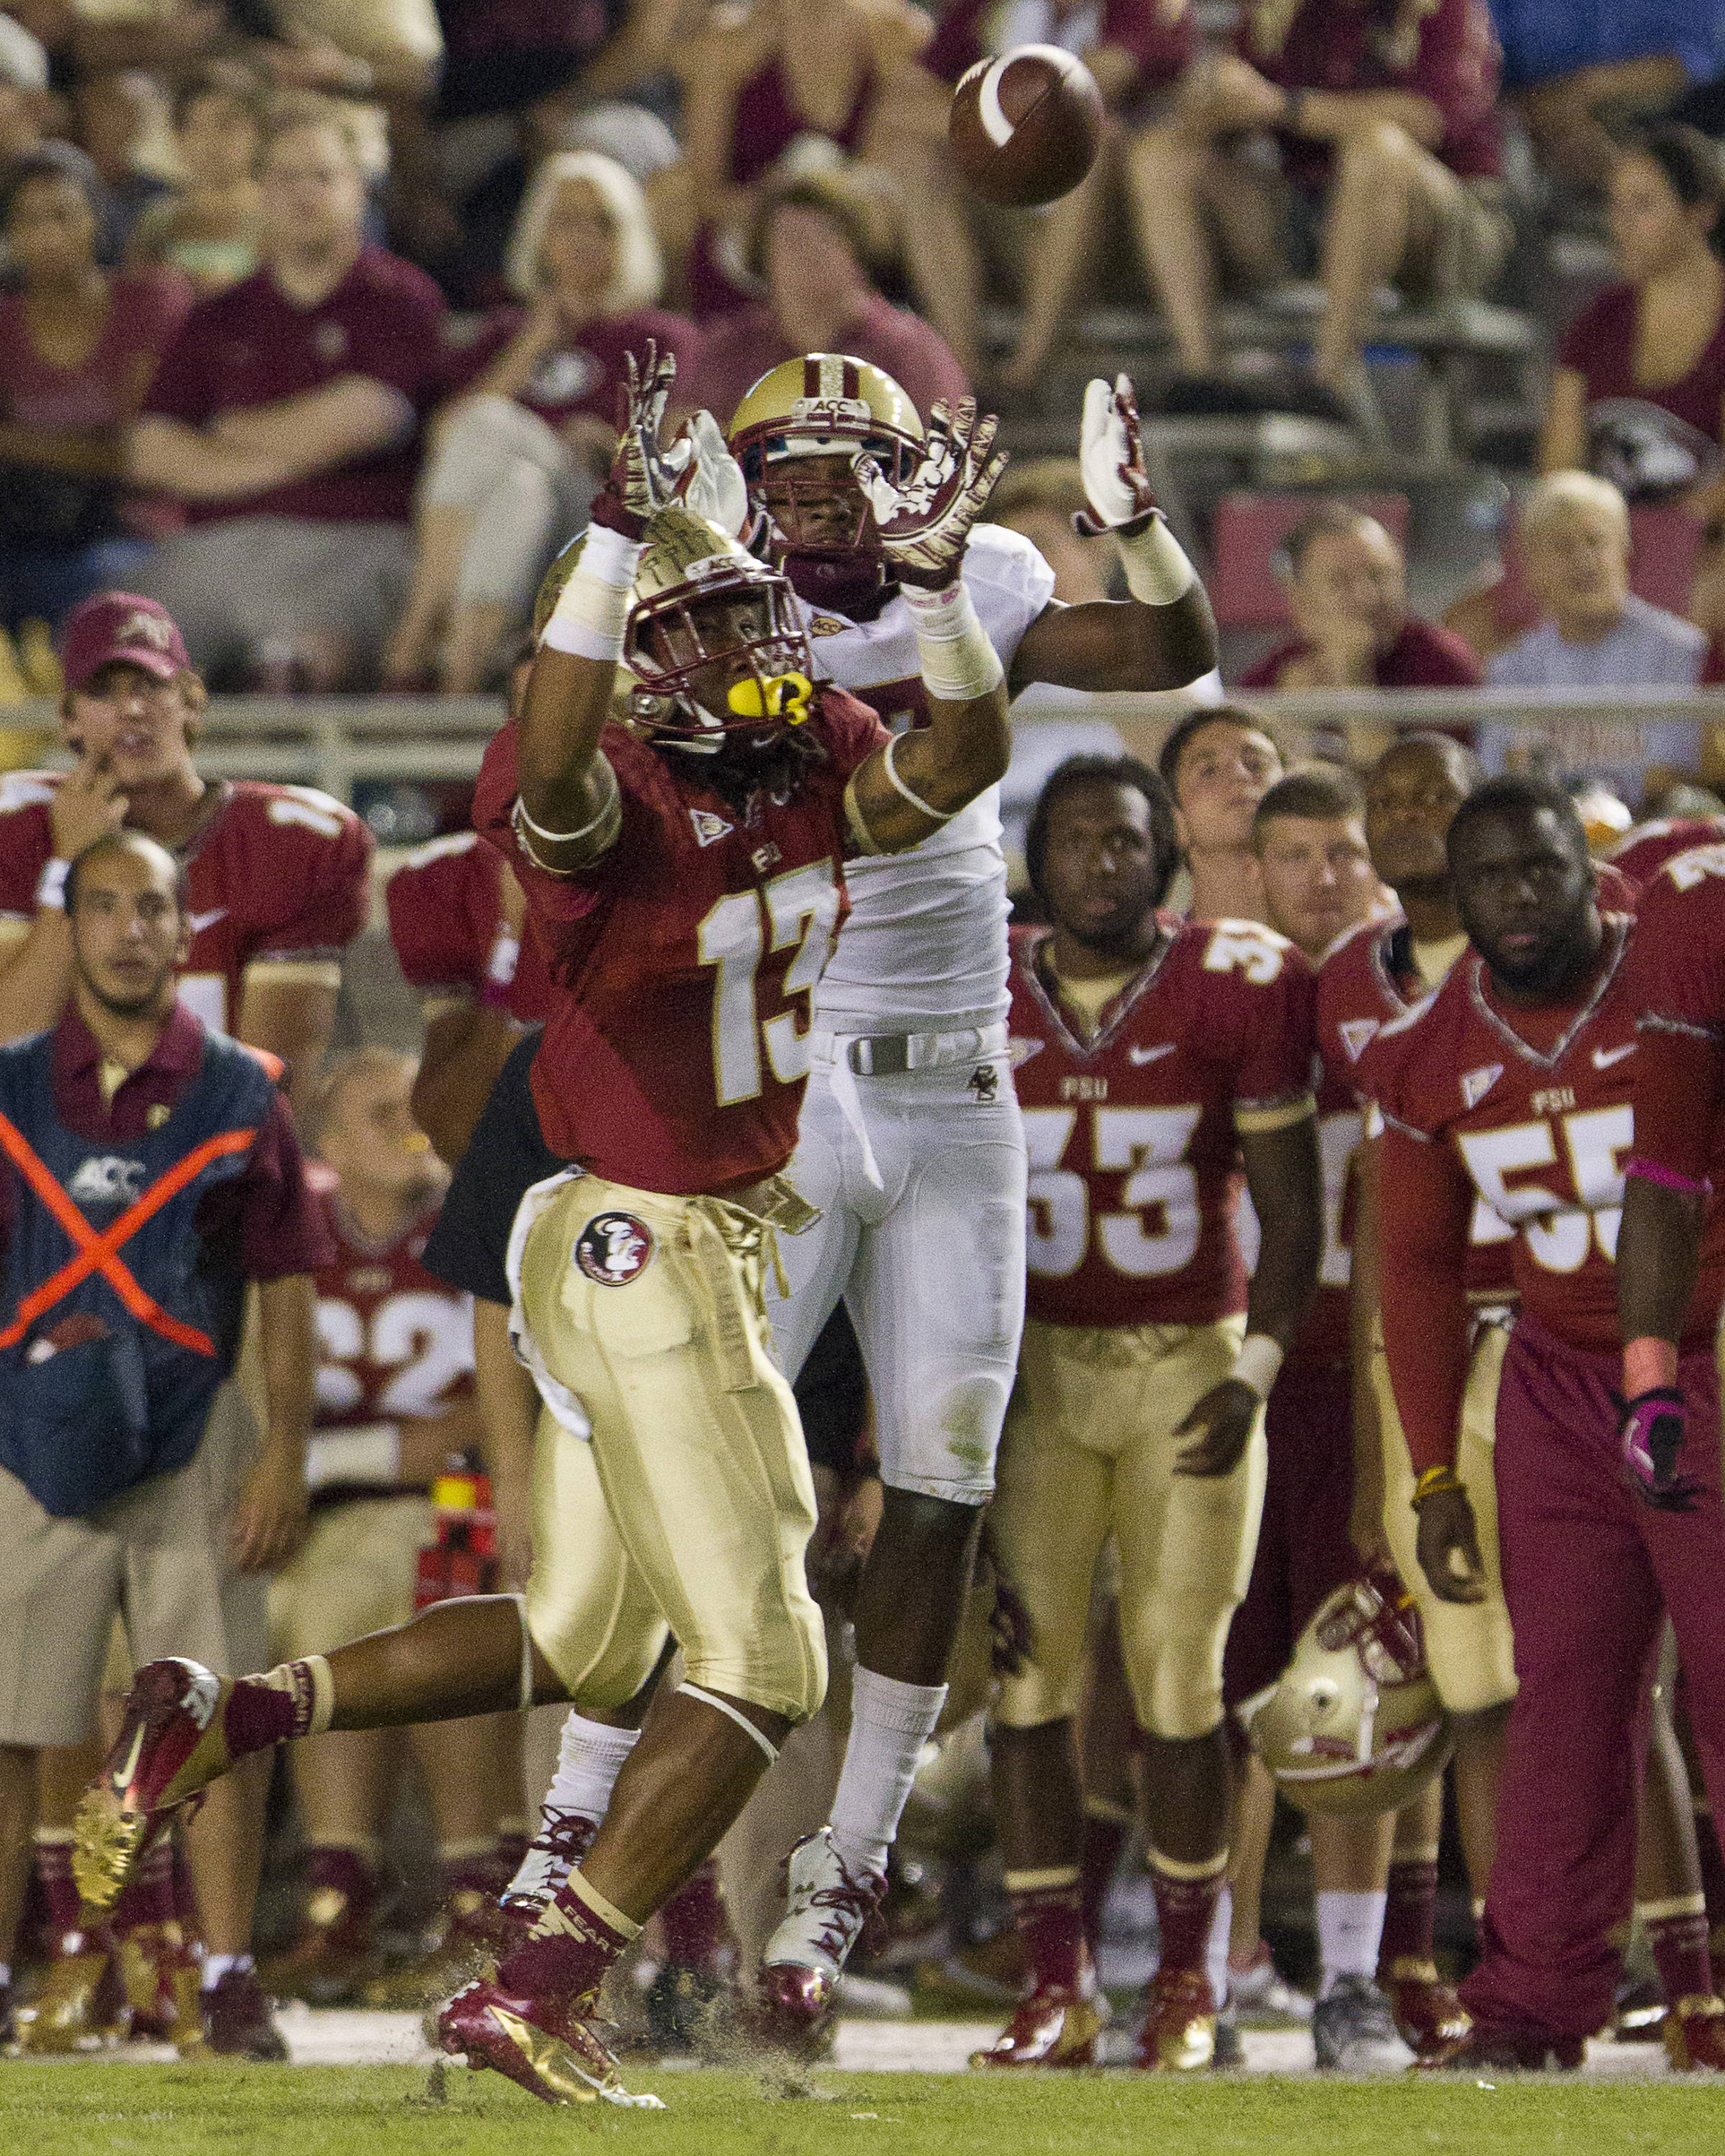 Ronald Darby (13) makes a catch during the FSU vs Boston College football game on October 13, 2012 in Tallahassee, Fla.